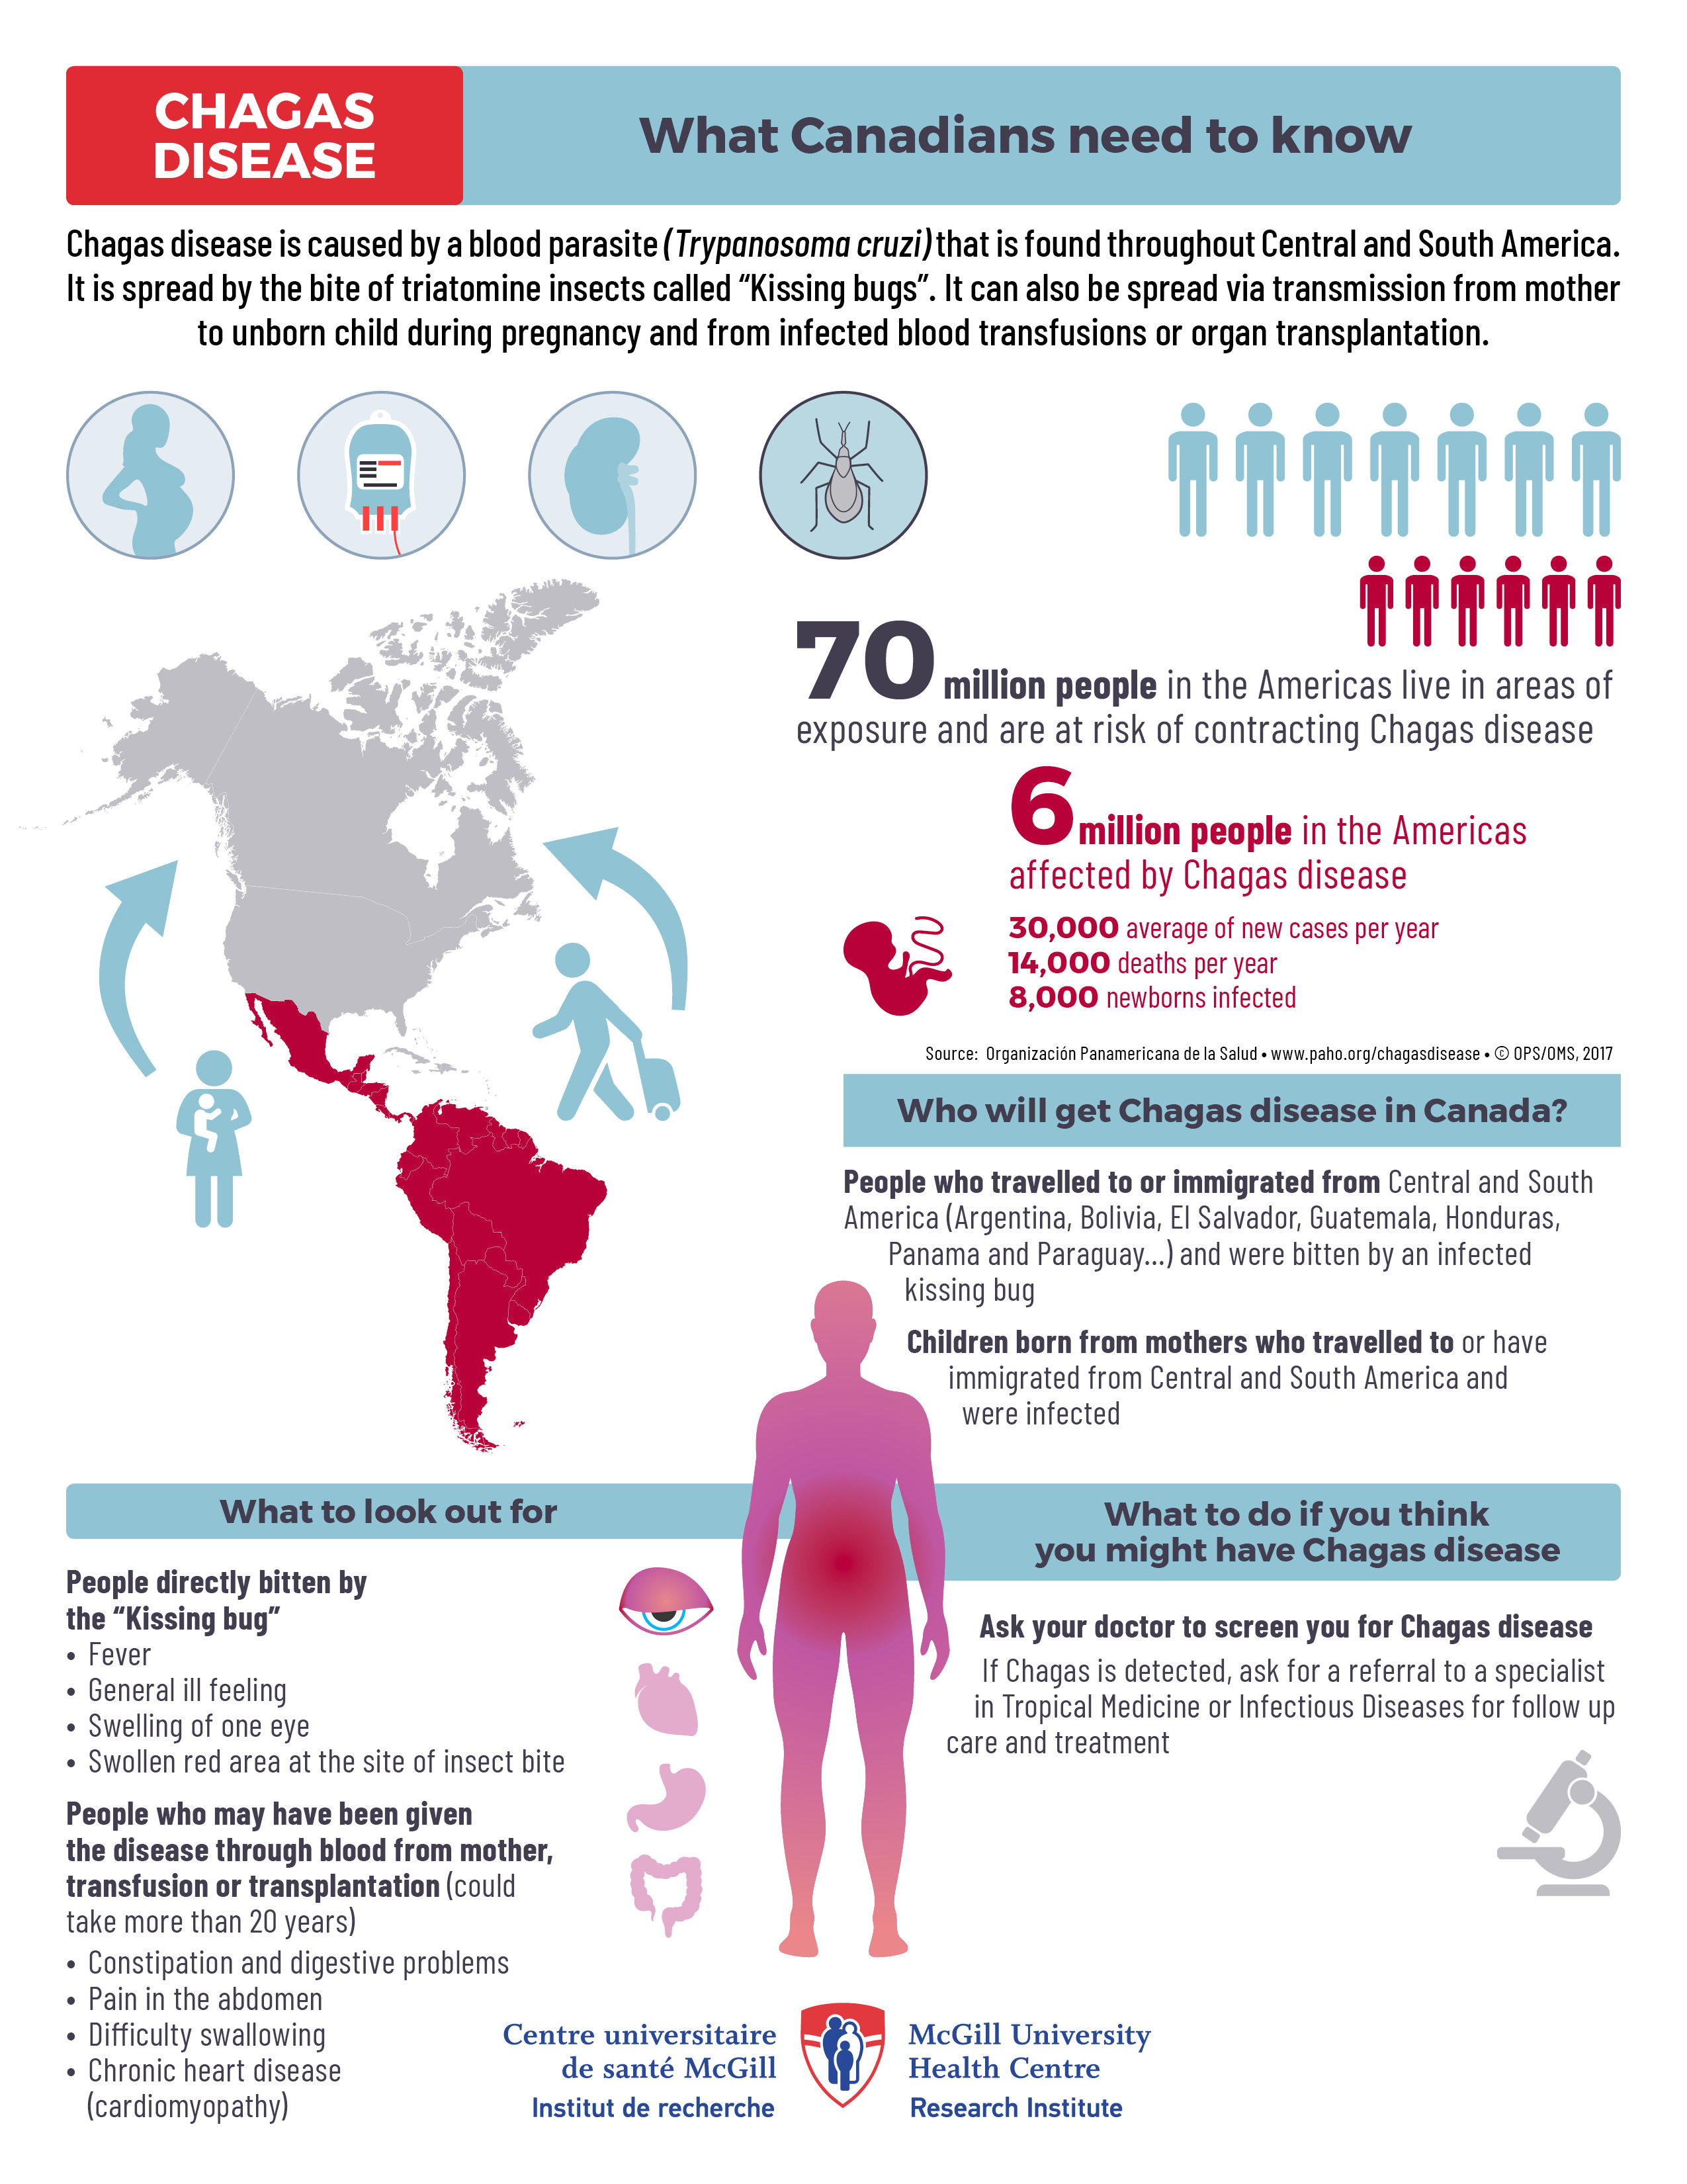 Does Chagas Disease Present A Health Risk To Canadians